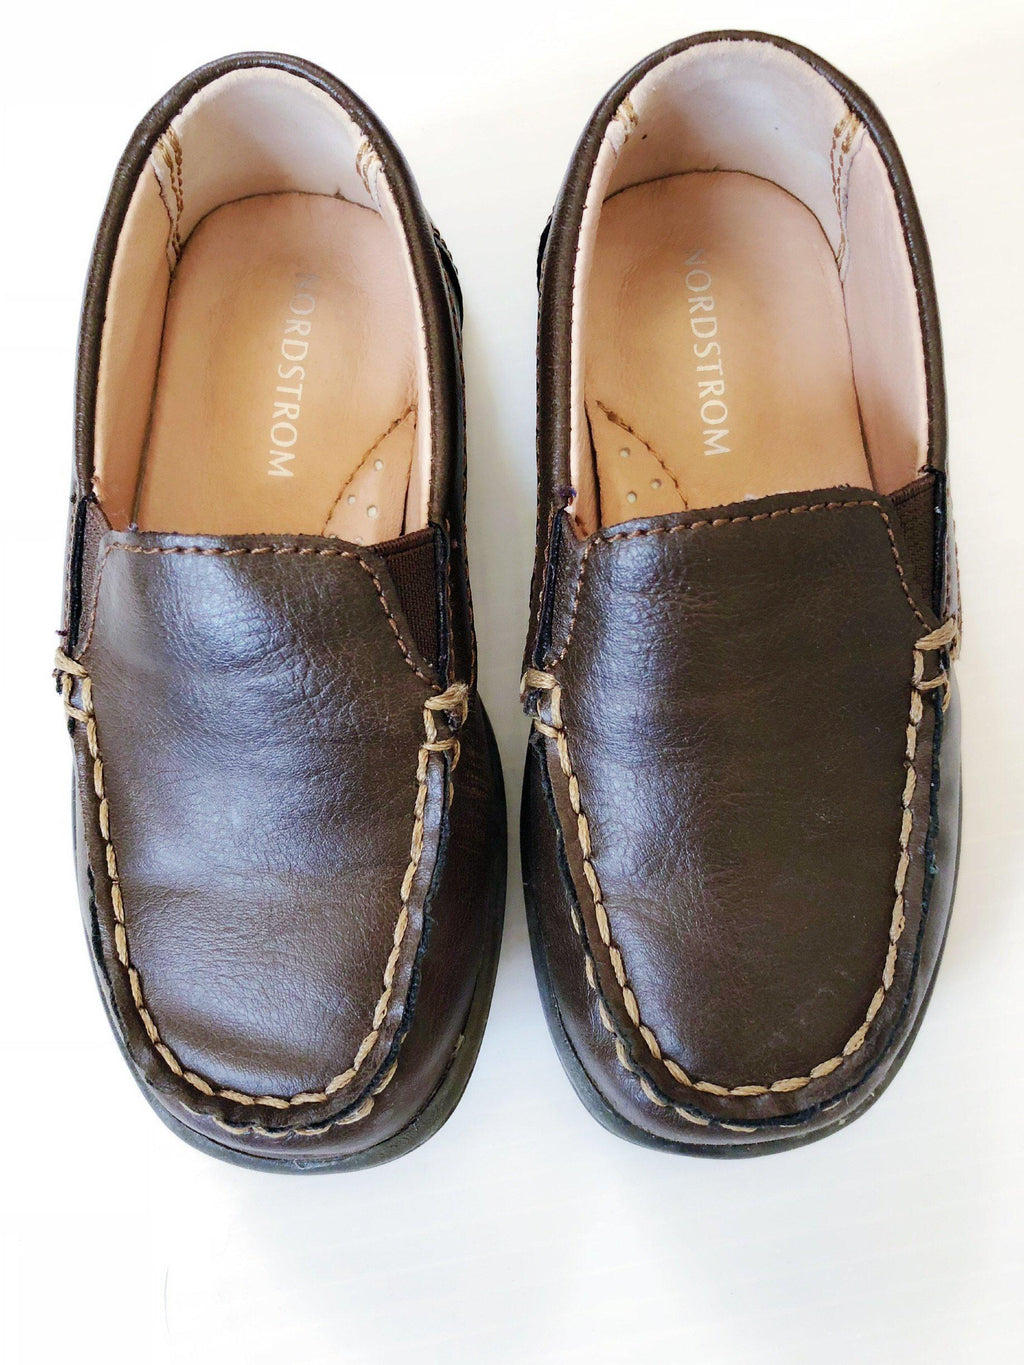 Nordstrom leather loafers size 7.5 (new)